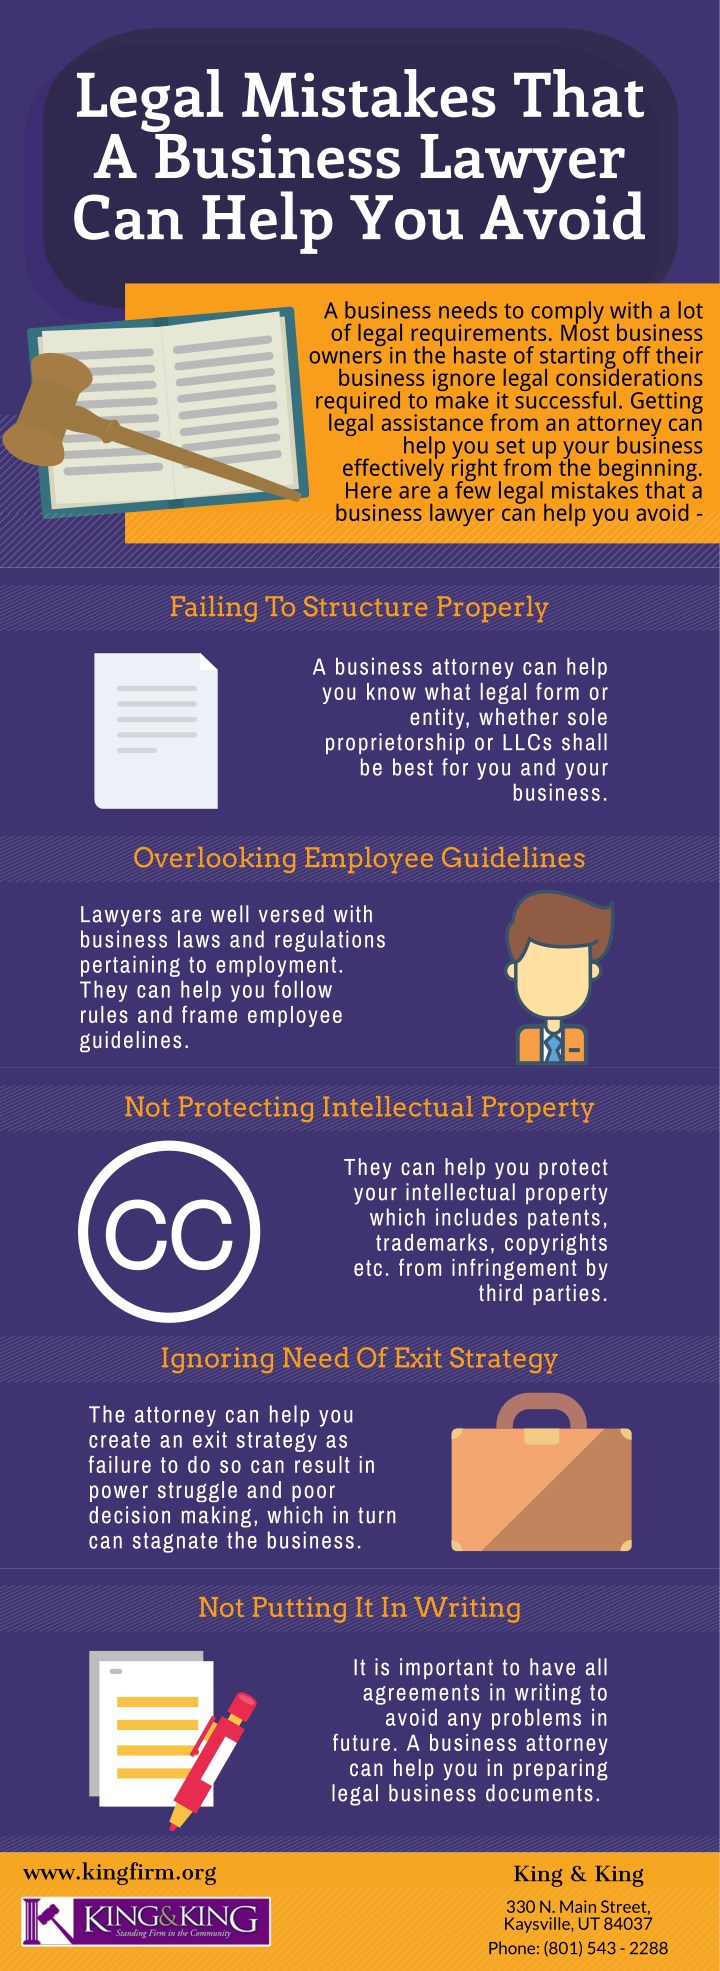 legal mistakes that a business lawyer can help n.